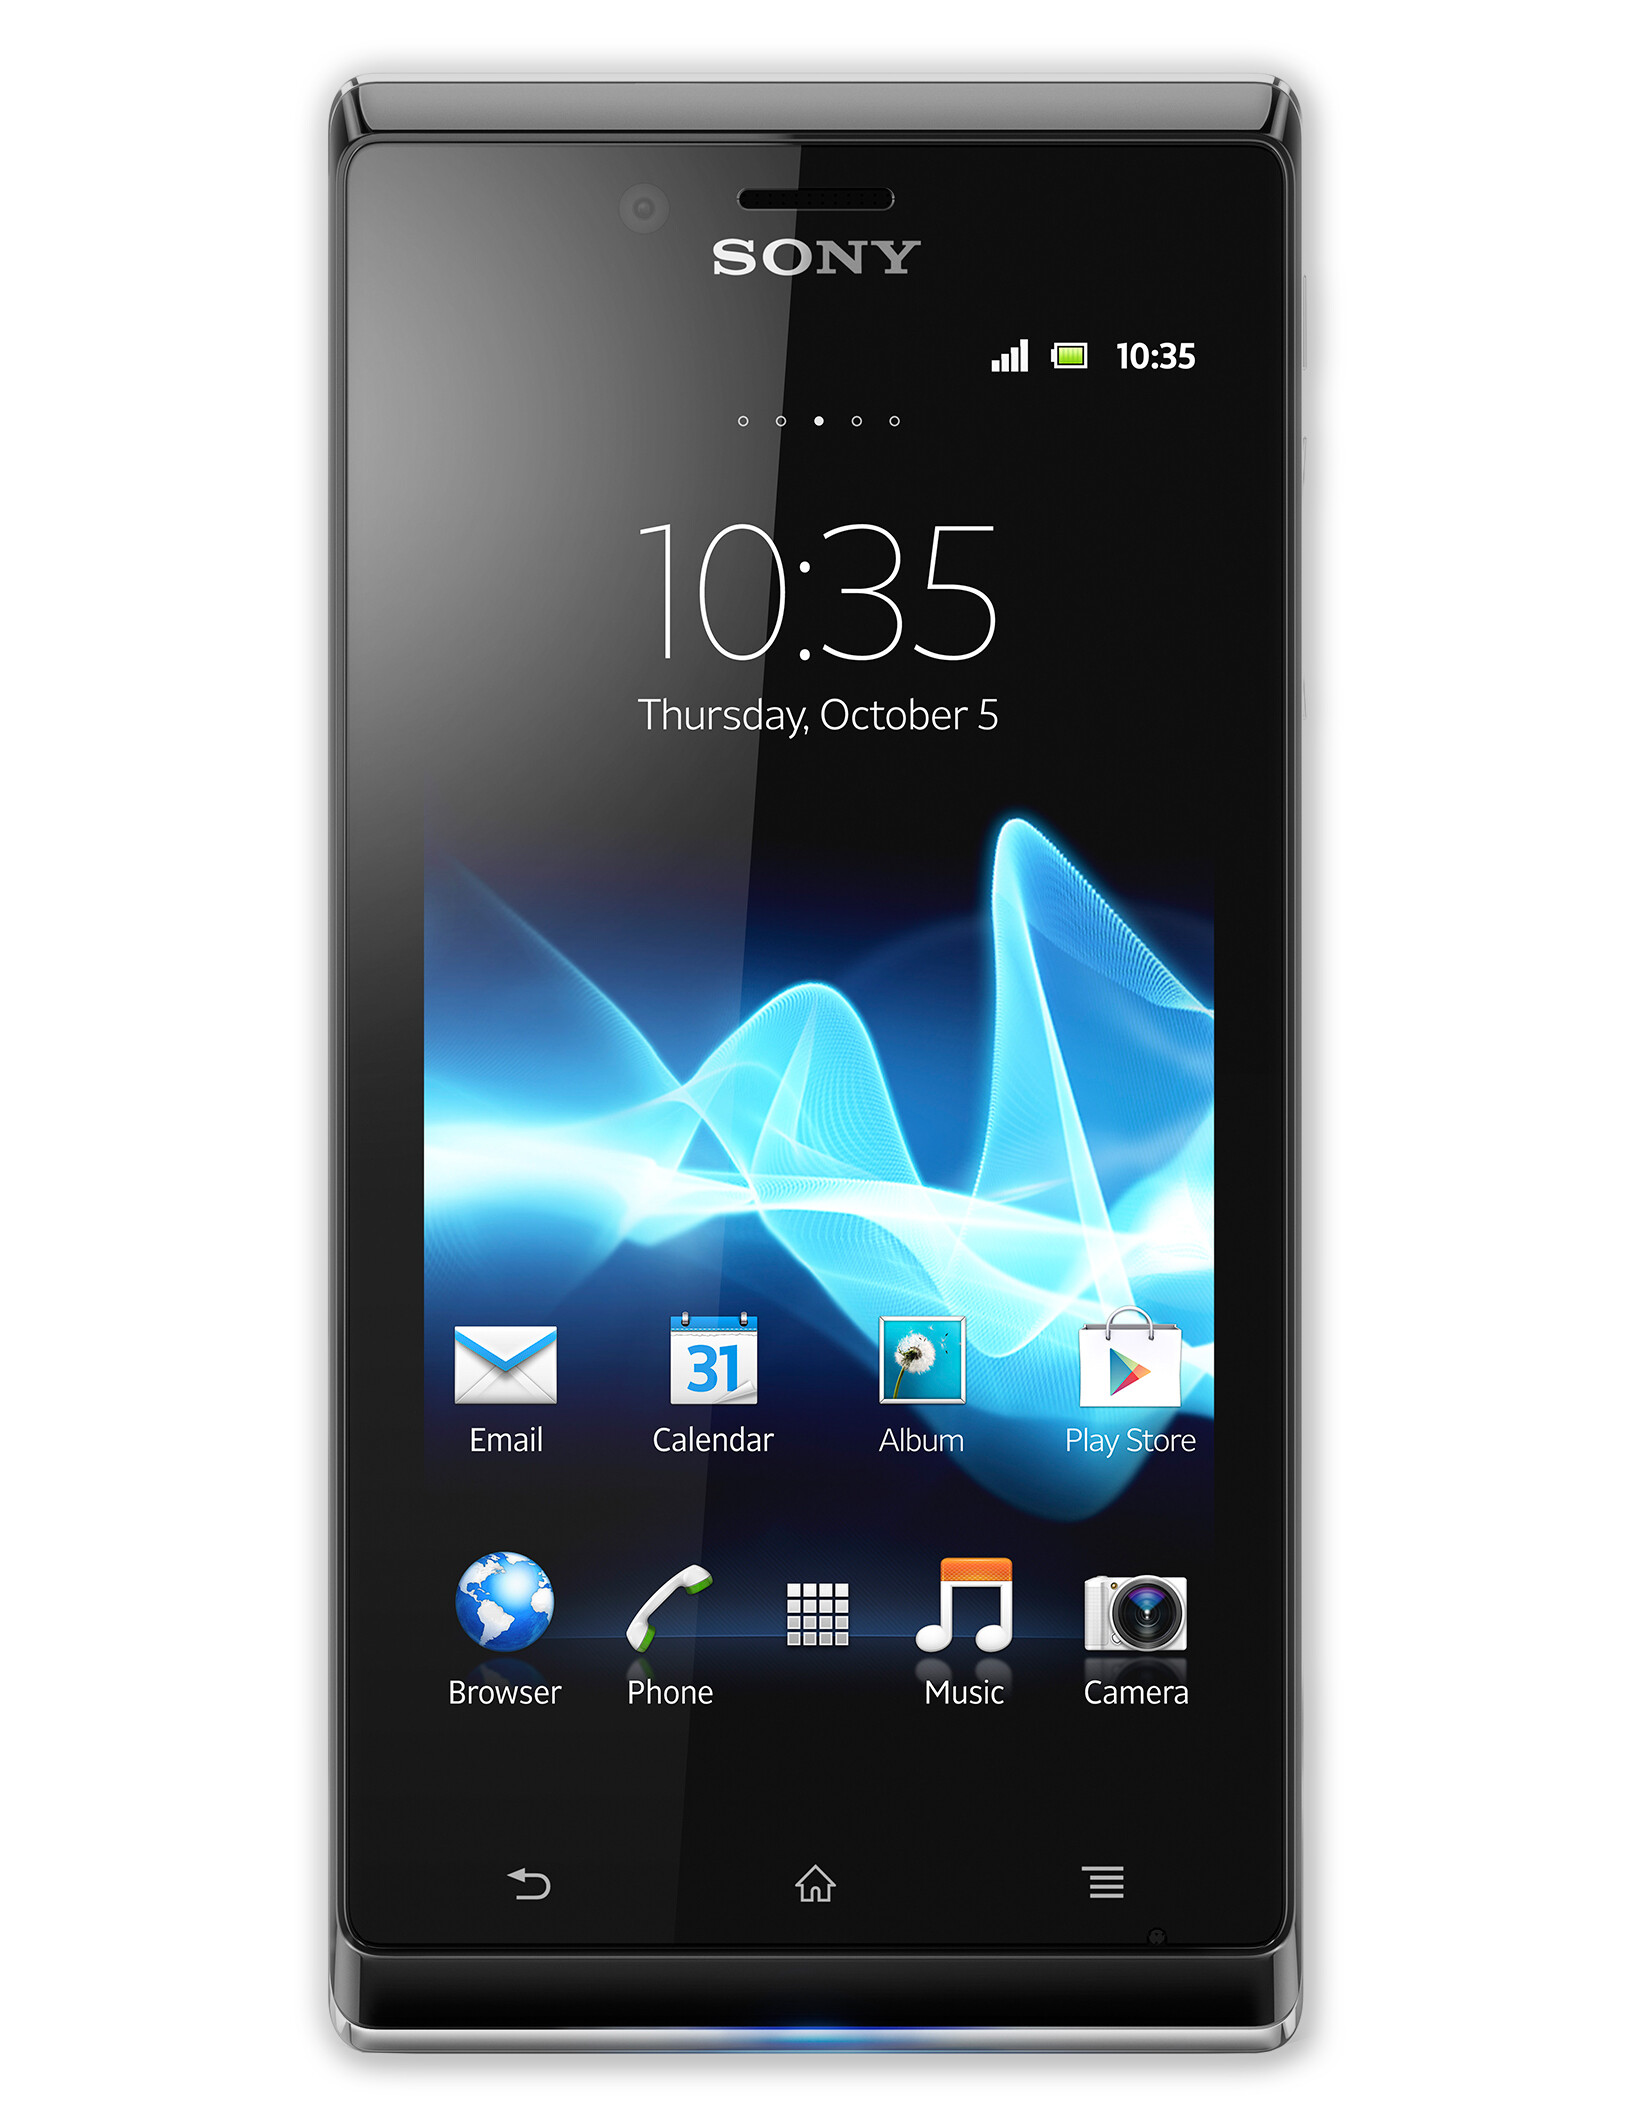 sony xperia model j cell phone user manual